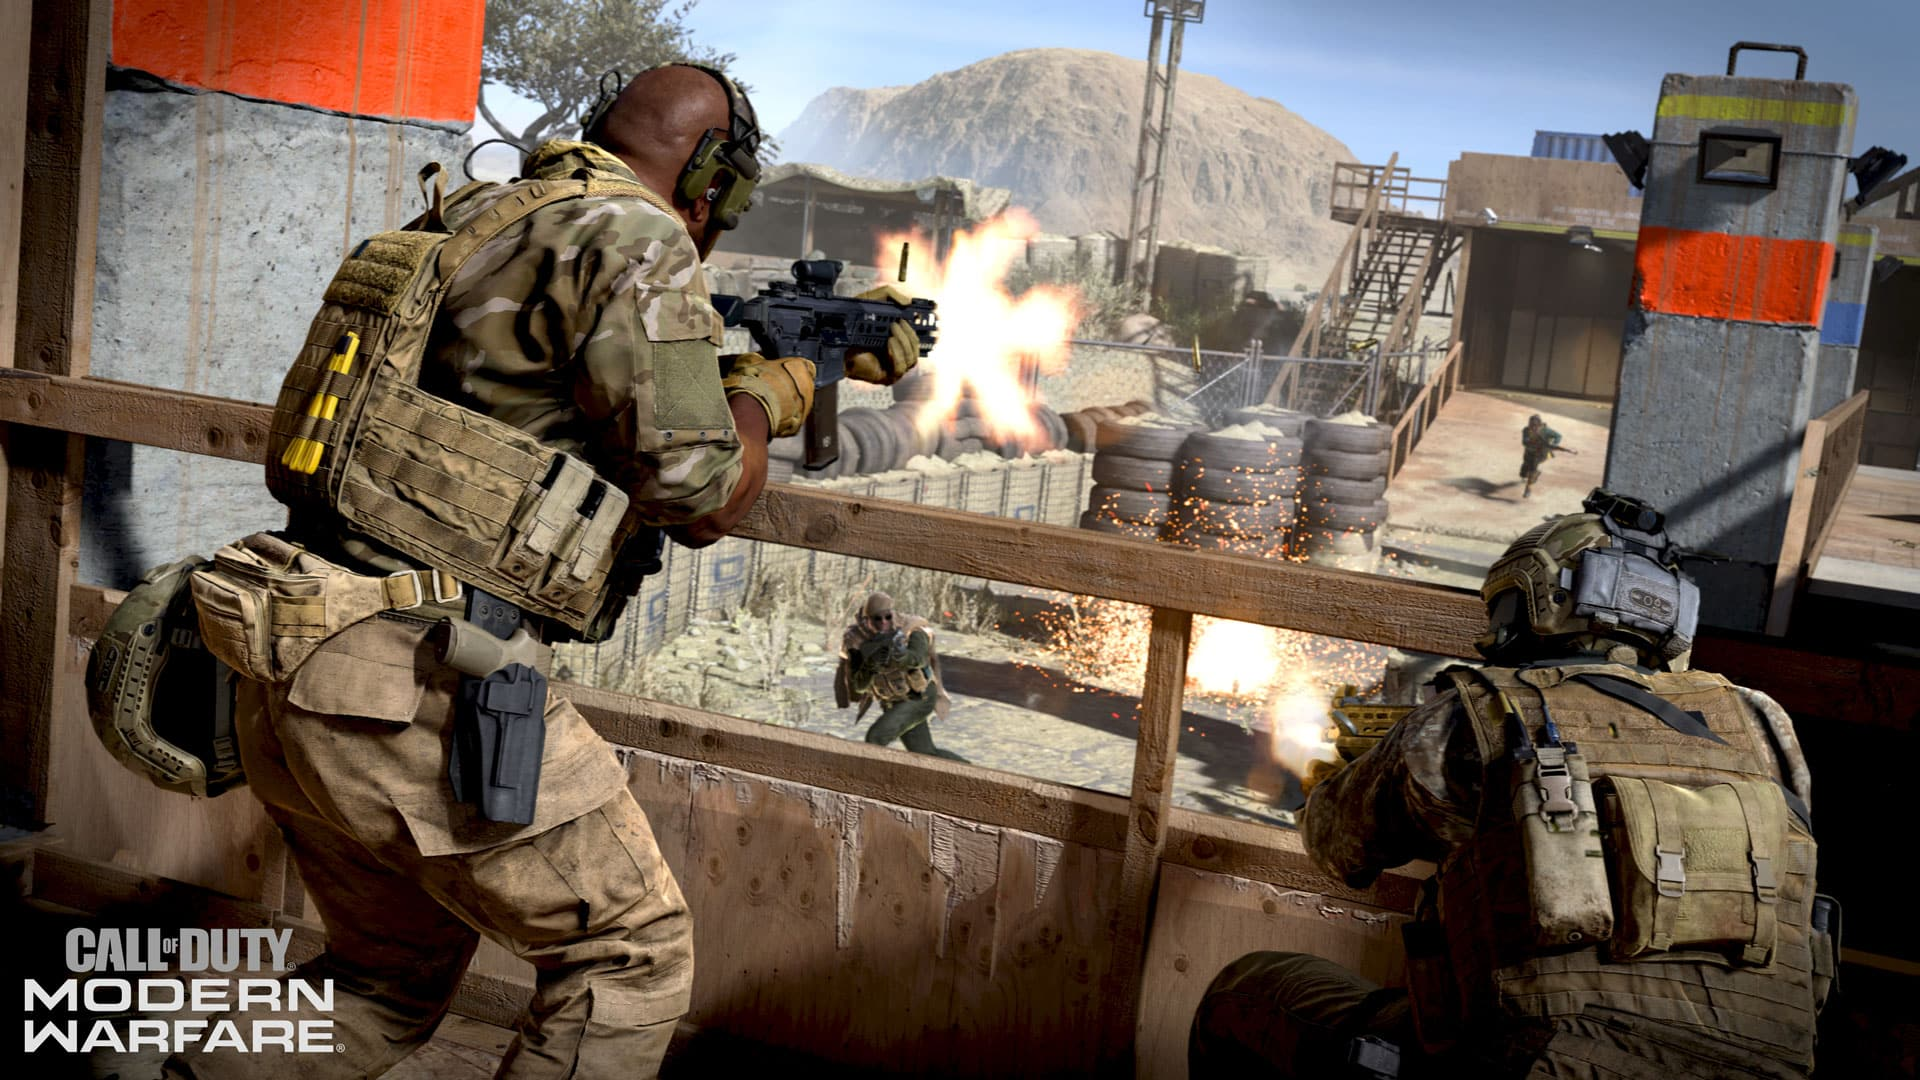 Call of Duty Modern Warfare Multiplayer Alpha free on PS4